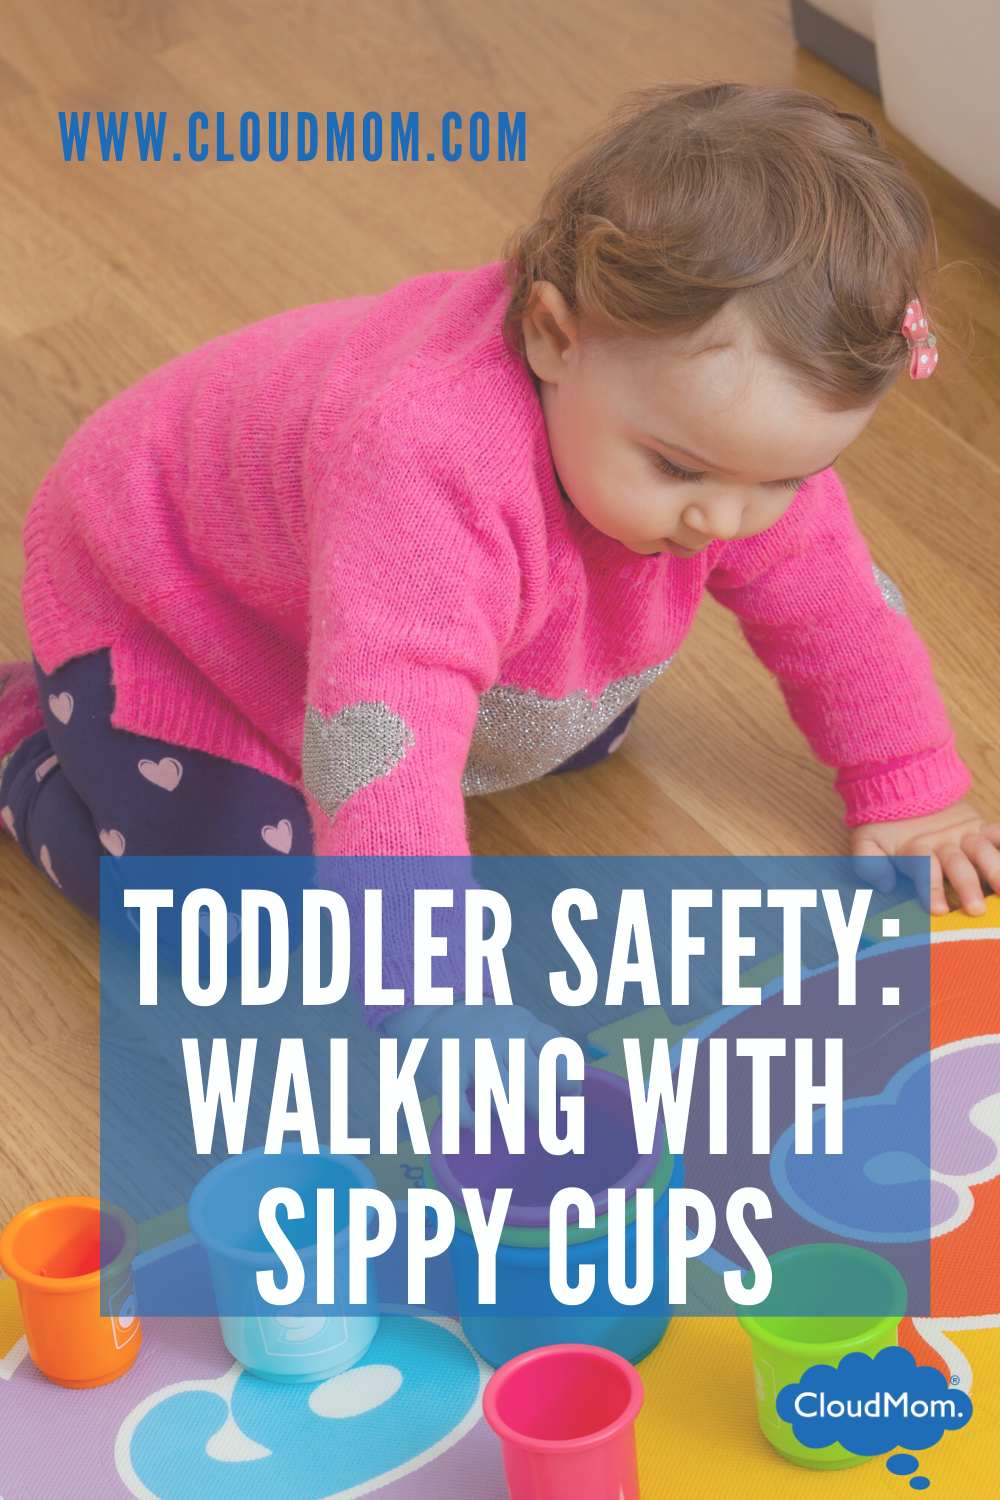 Toddler Safety: Walking With Sippy Cups